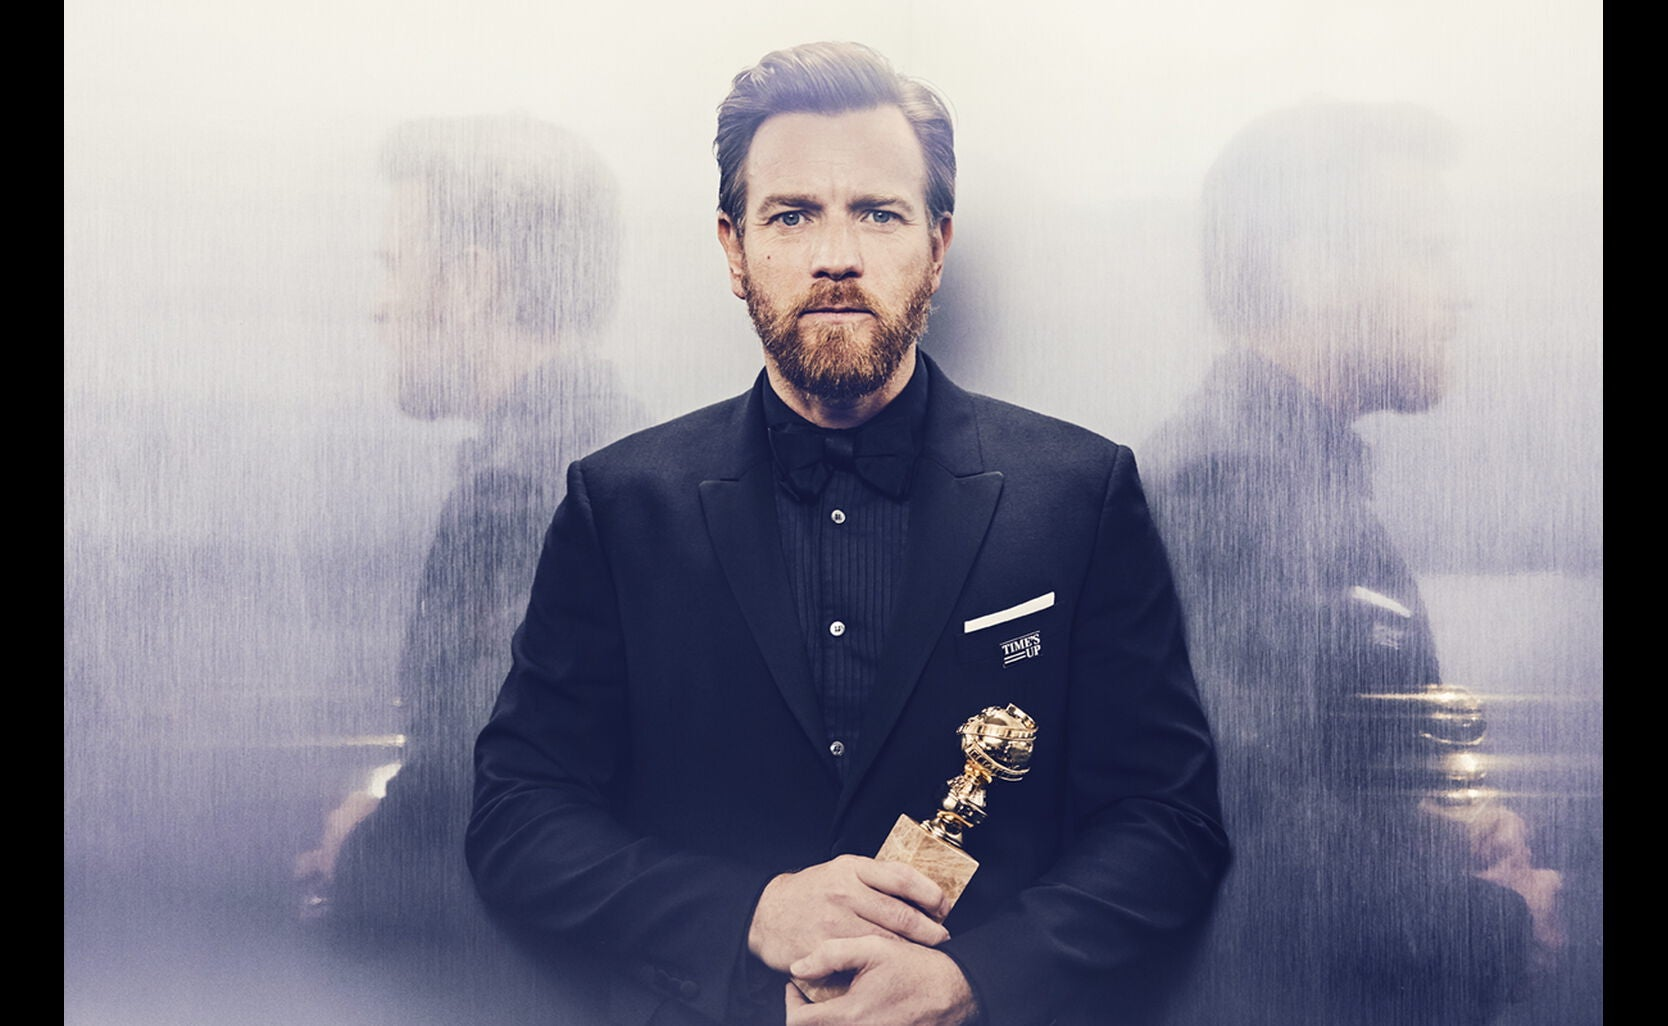 Ewan McGregor, Best Performance by an Actor in a Television Series, Drama - Fargo